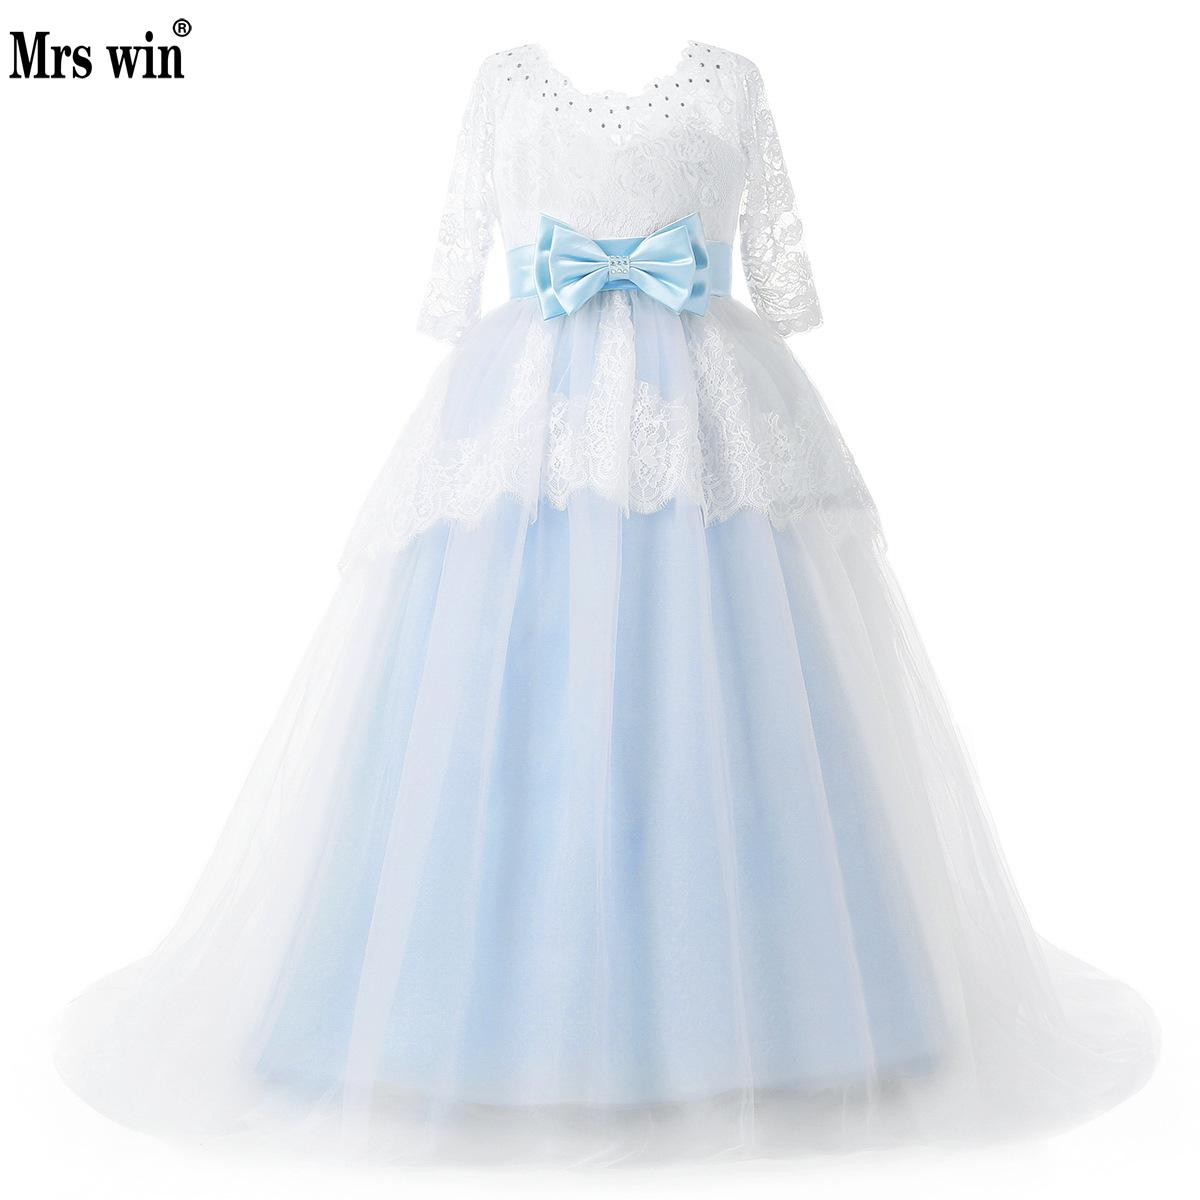 Pageant Dresses For Girls Sky Blue Lace Applique Tulle With Crystal Flower Girl Dresses Long Sleeves A Line Kids Evening Gown